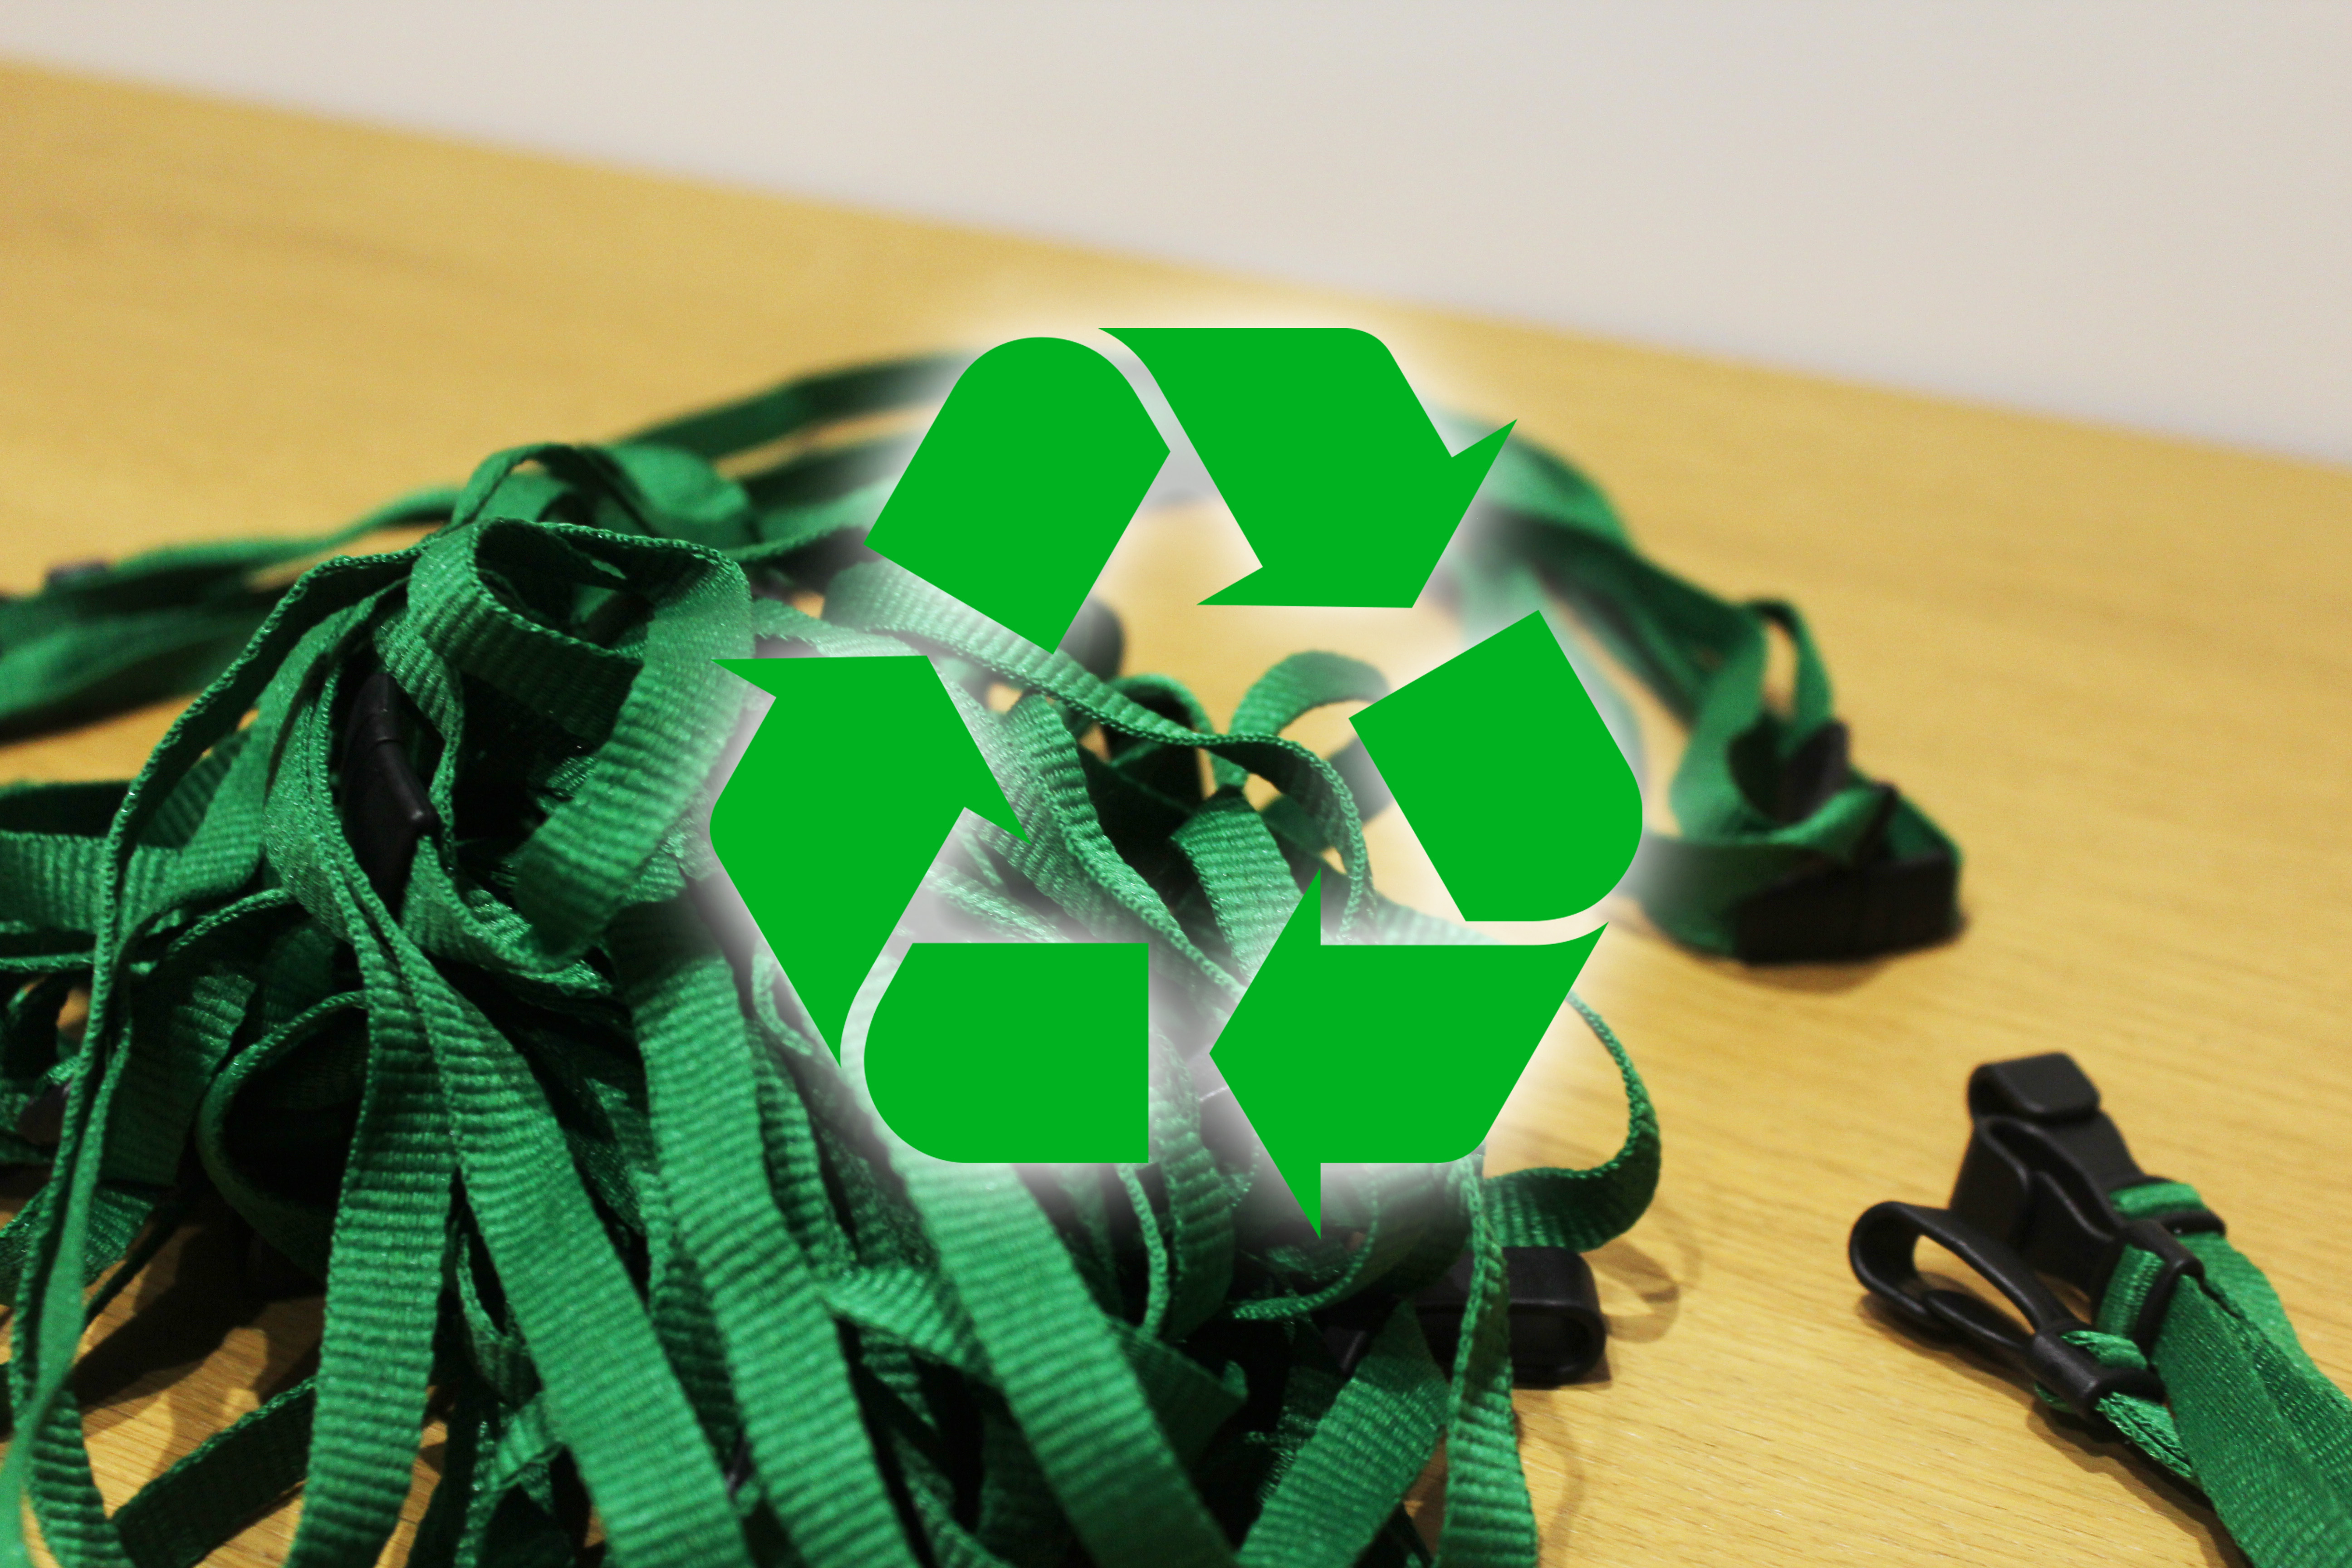 An image of Lanyard Recycling